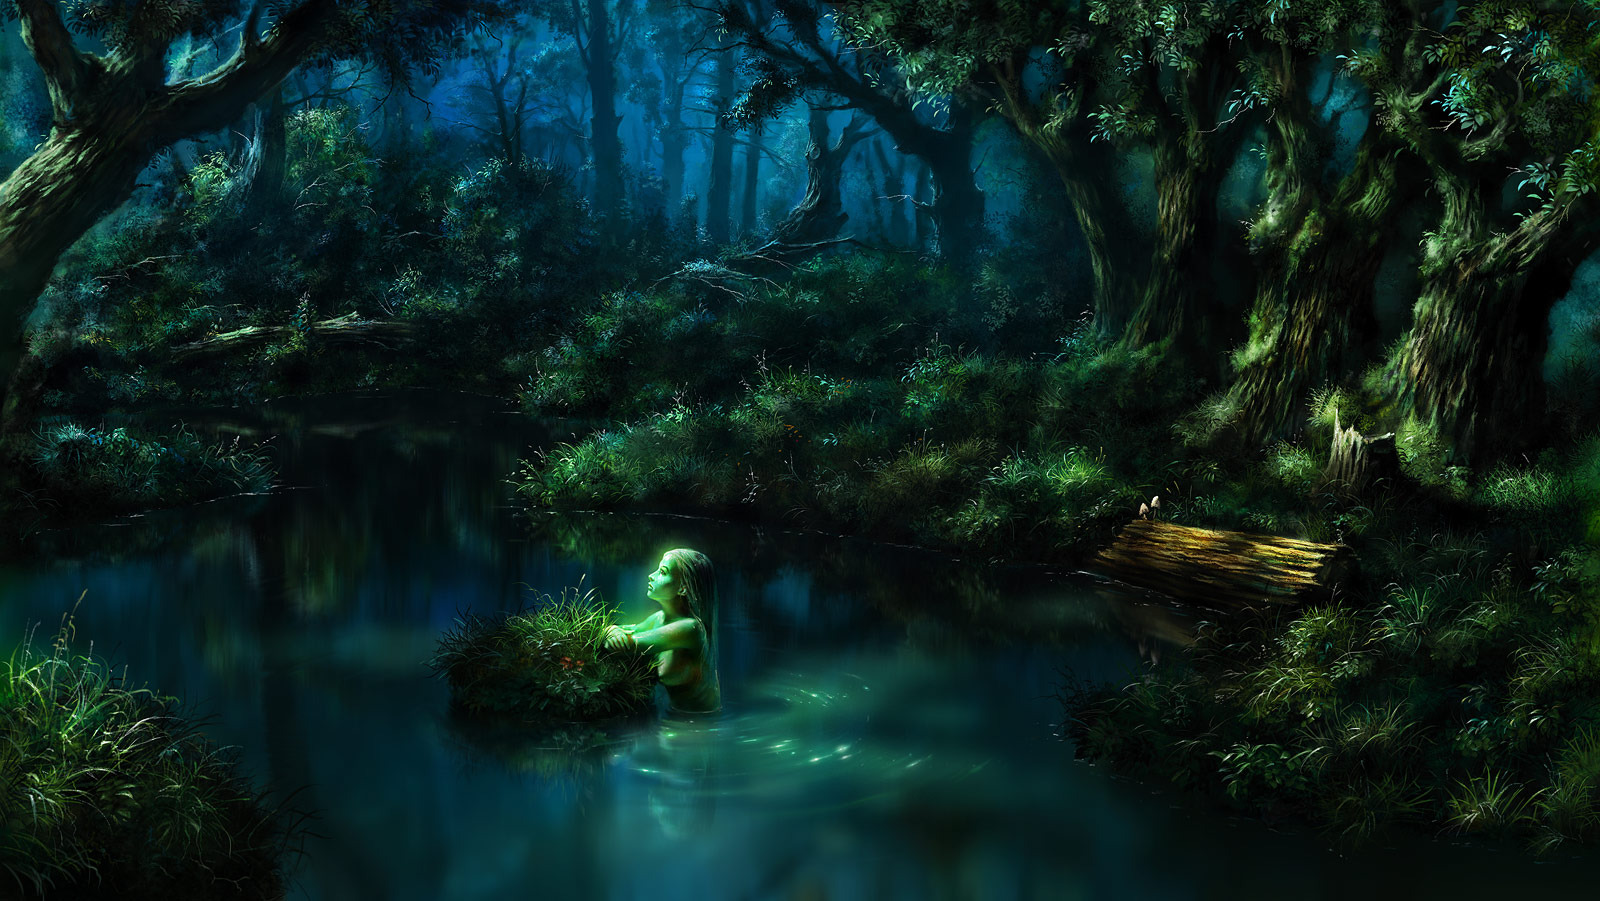 1600x901_15162_Night_Memories_2d_fantasy_landscape_game_art_mermaid_forest_picture_image_digital_art.jpg